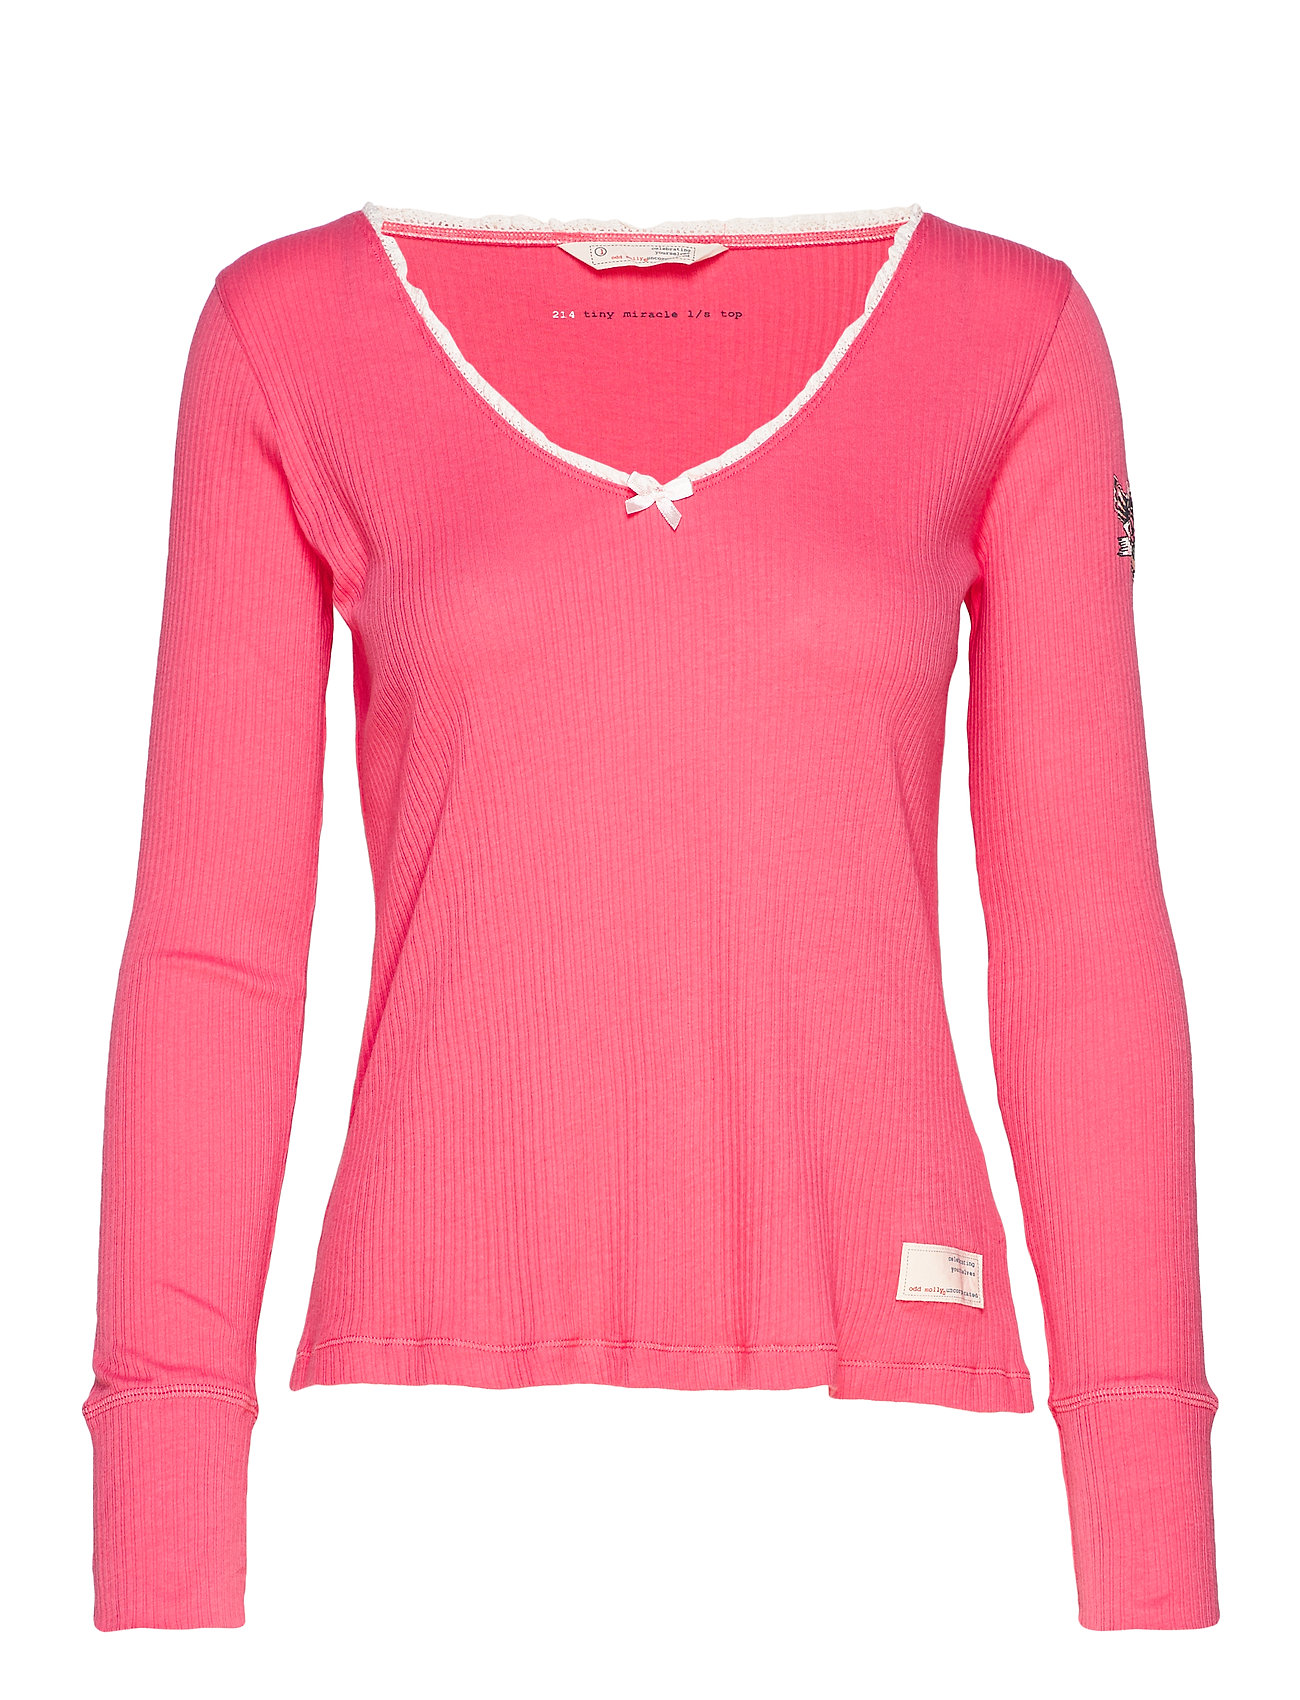 ODD MOLLY Tiny Miracle L/S Top - SPARKLING PINK